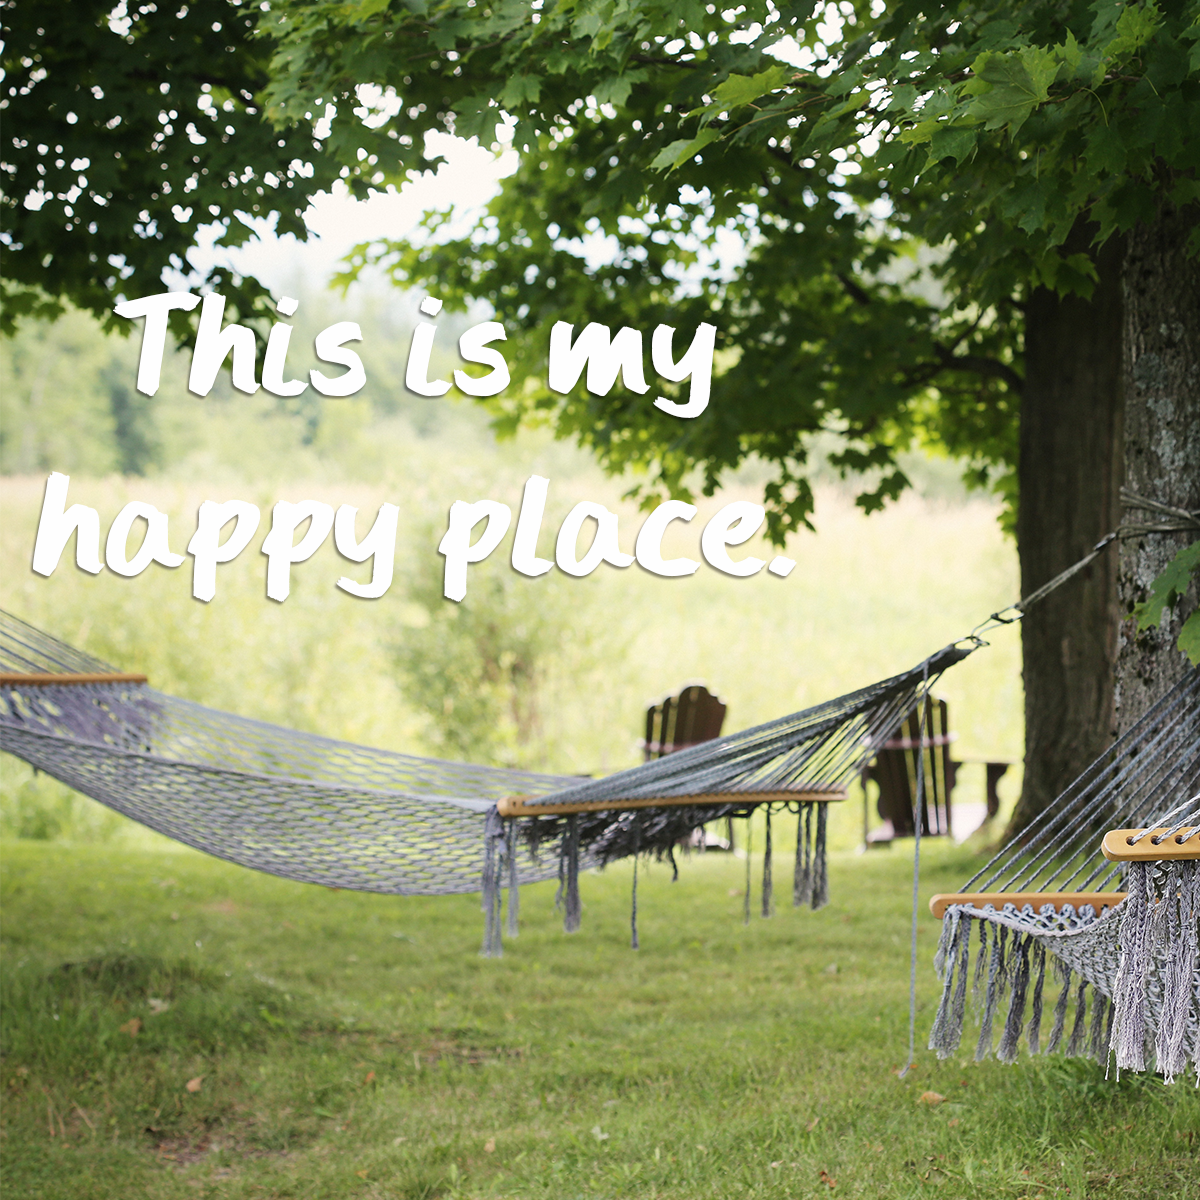 july 22nd is hammock day a day to relax in your very own happy place july 22nd is hammock day a day to relax in your very own happy      rh   pinterest